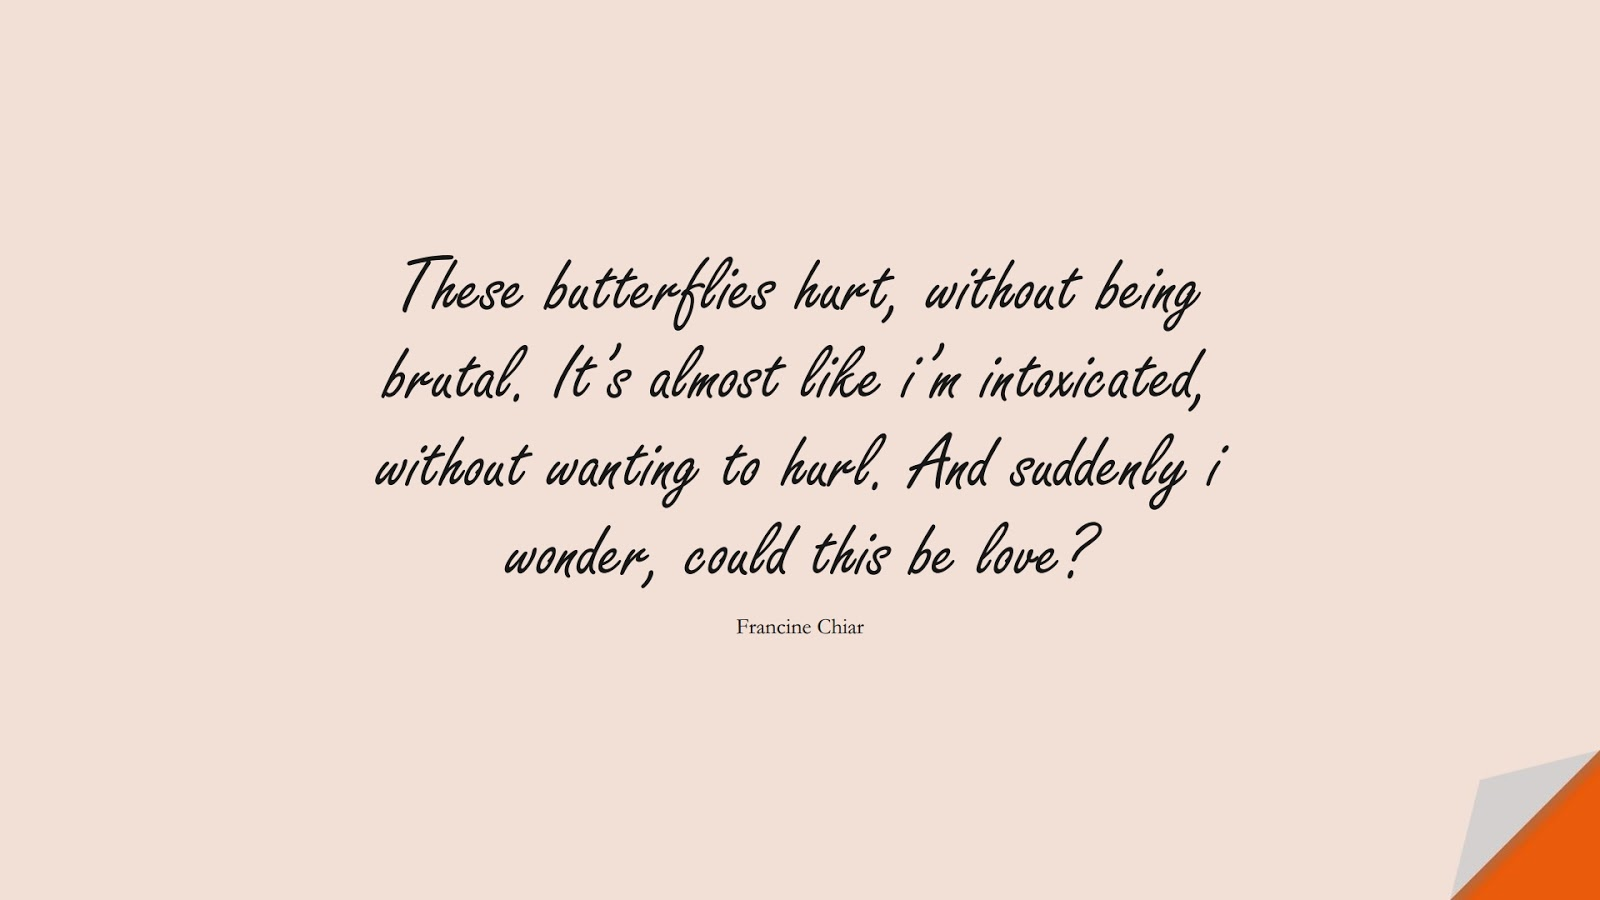 These butterflies hurt, without being brutal. It's almost like i'm intoxicated, without wanting to hurl. And suddenly i wonder, could this be love? (Francine Chiar);  #LoveQuotes